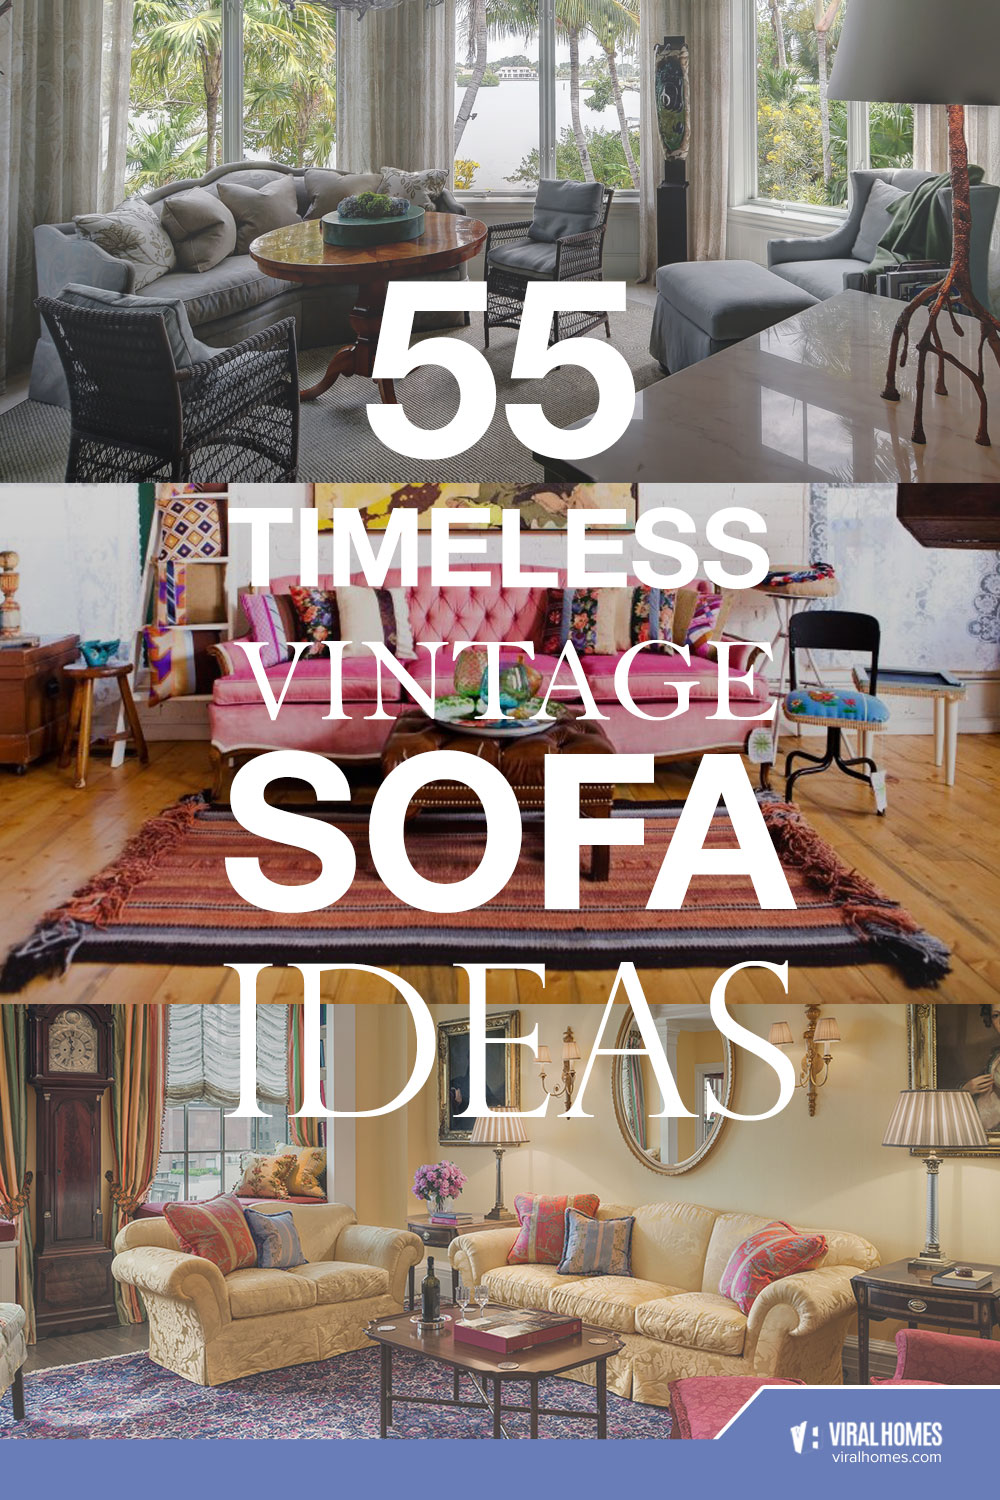 Vintage Sofa Ideas for the Classy Homemakers